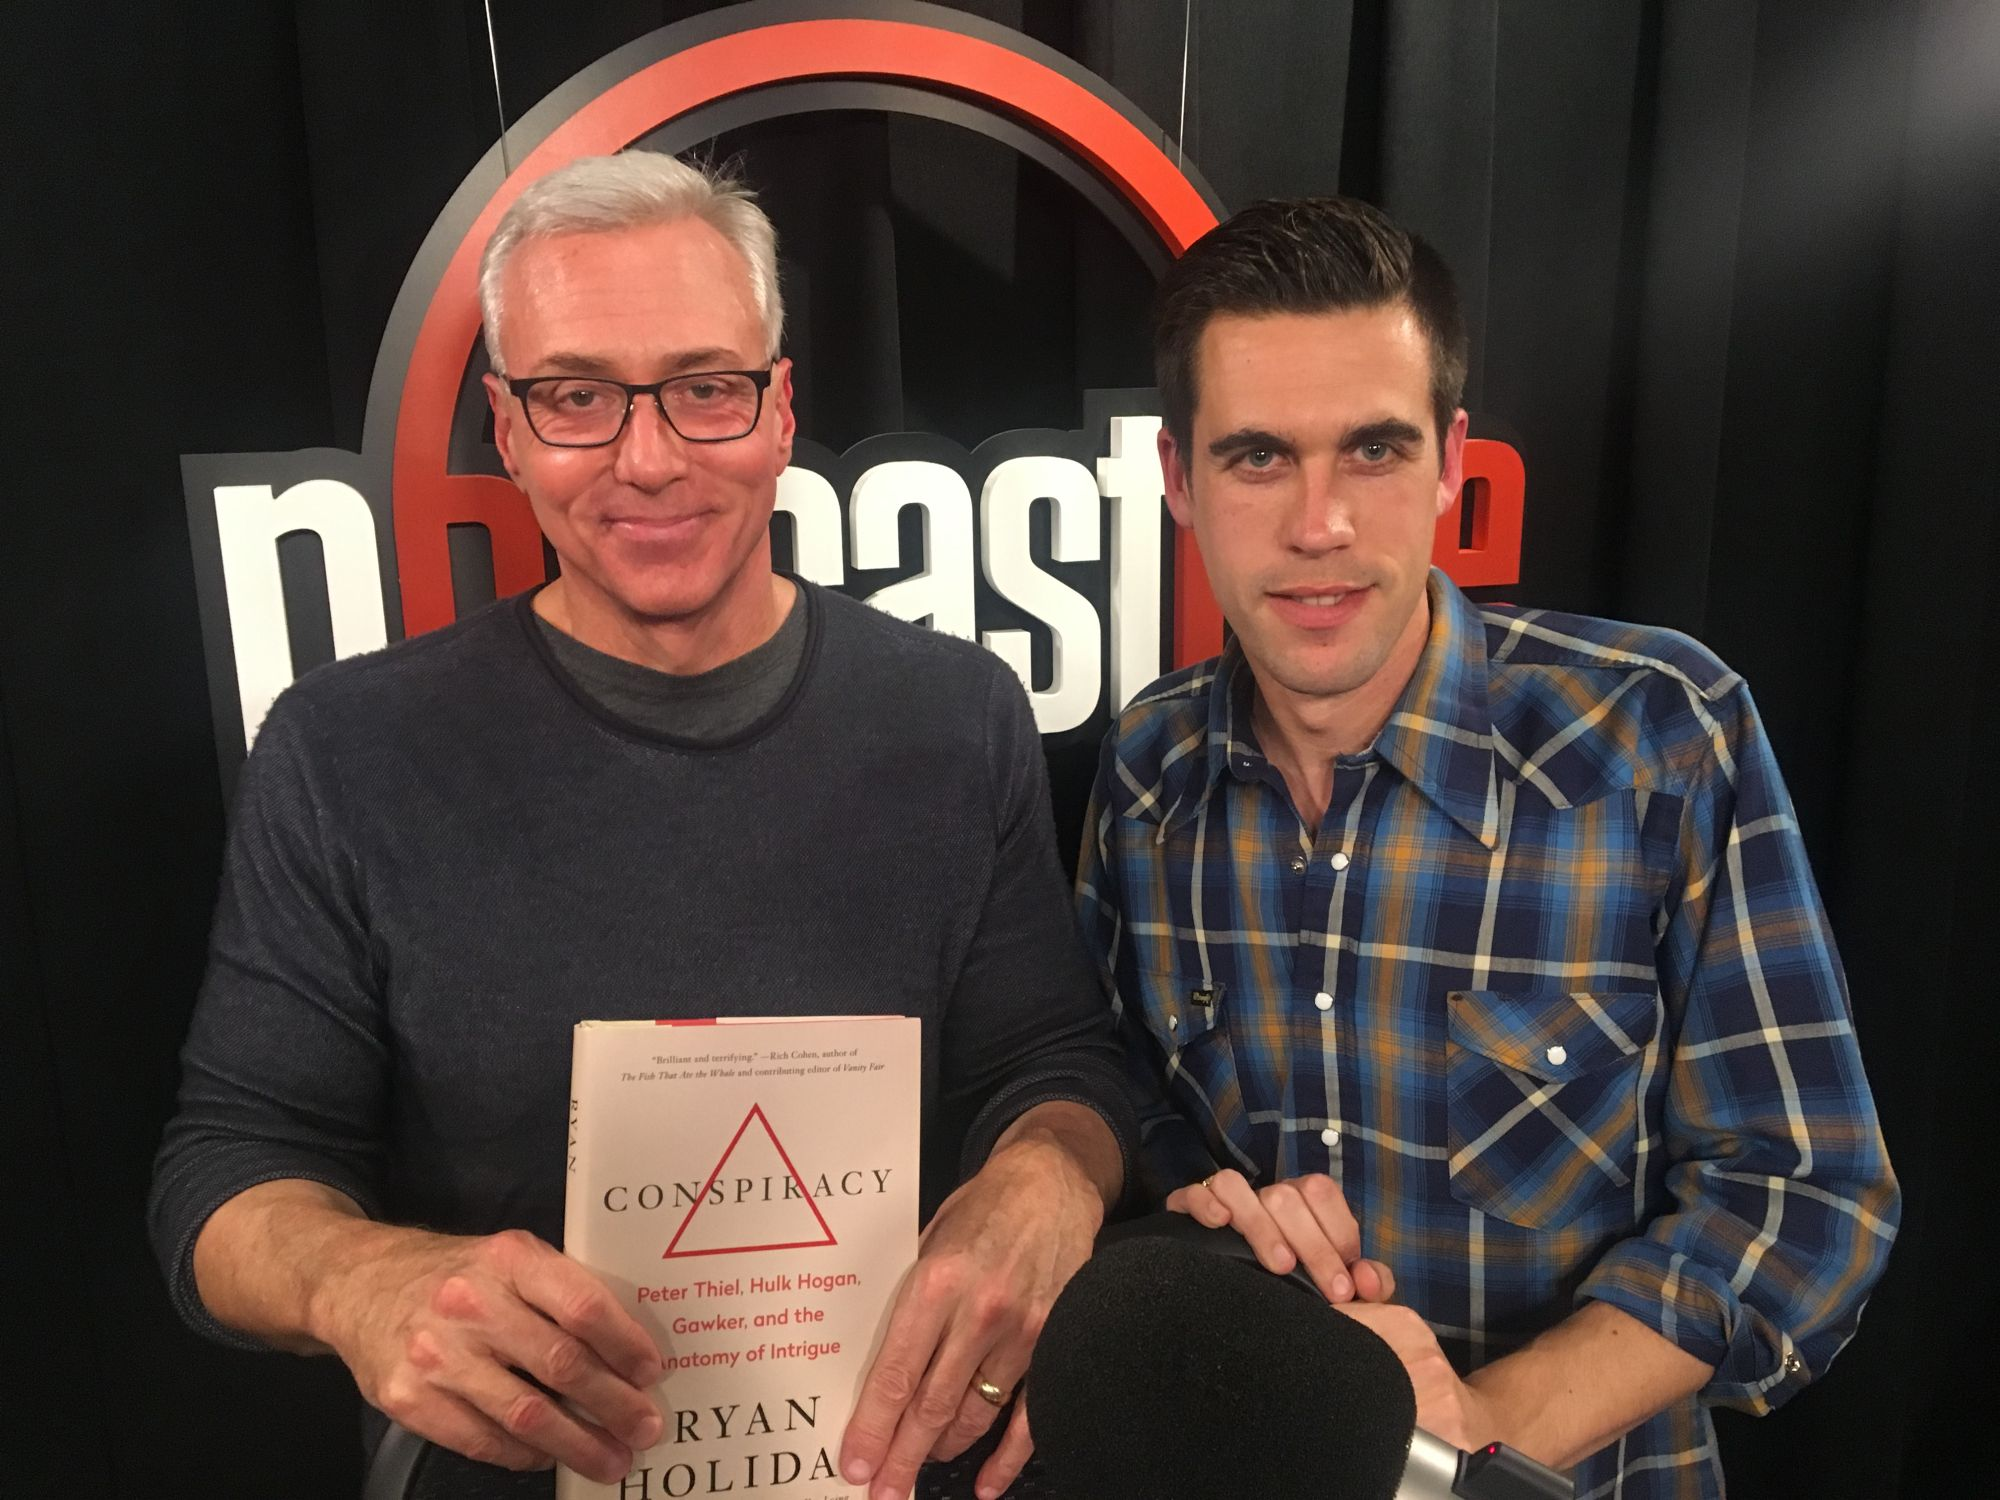 Ryan Holiday [Episode 322]